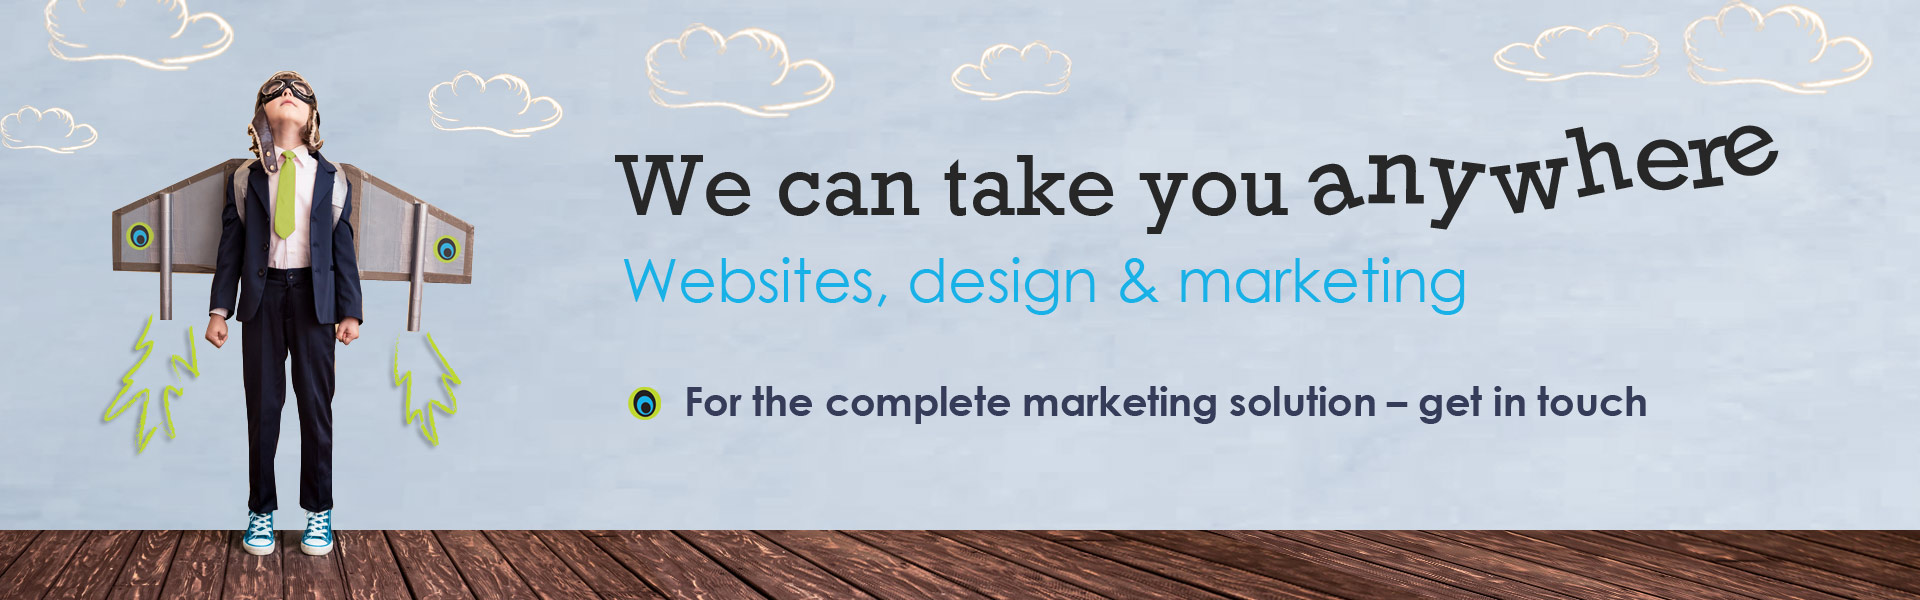 Marketing Zone, Website design Hertfordshire, marketing agency, marketing agencies in Hertfordshire